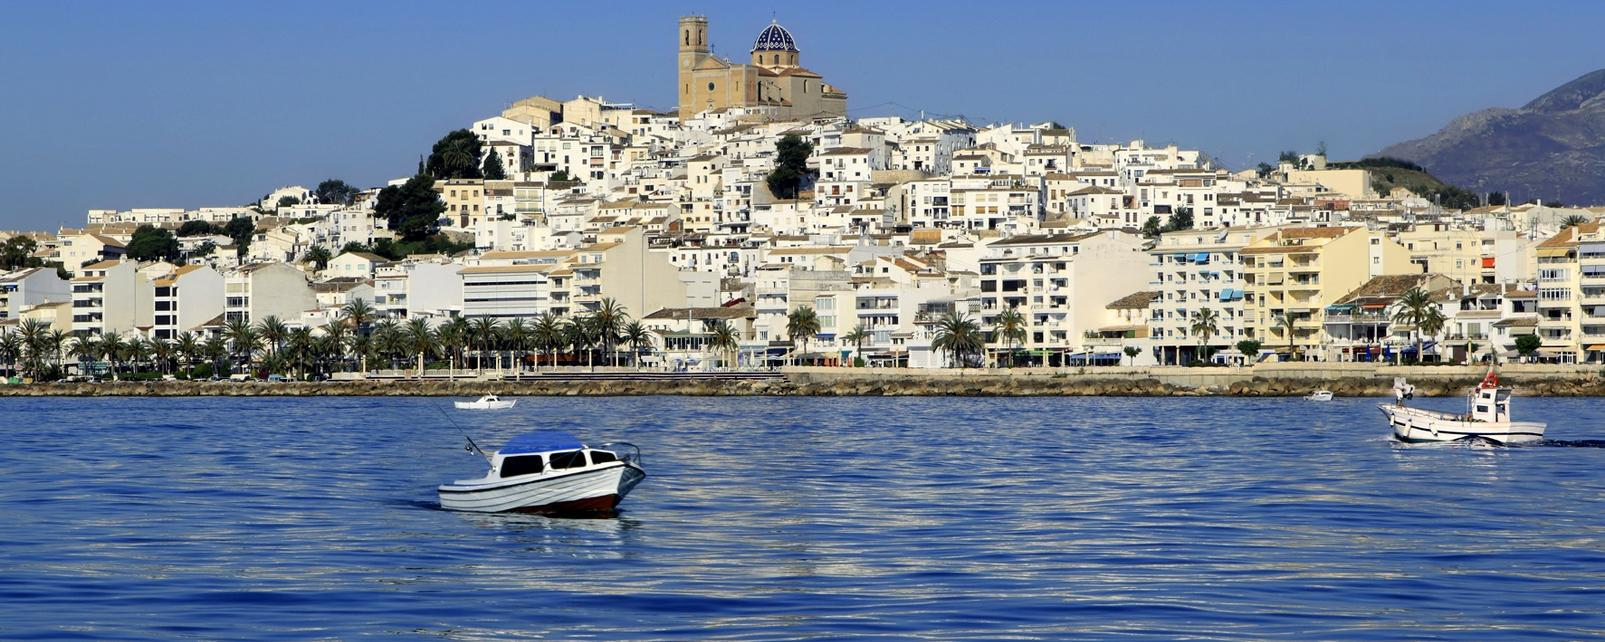 Viajes single Alicante julio 2018